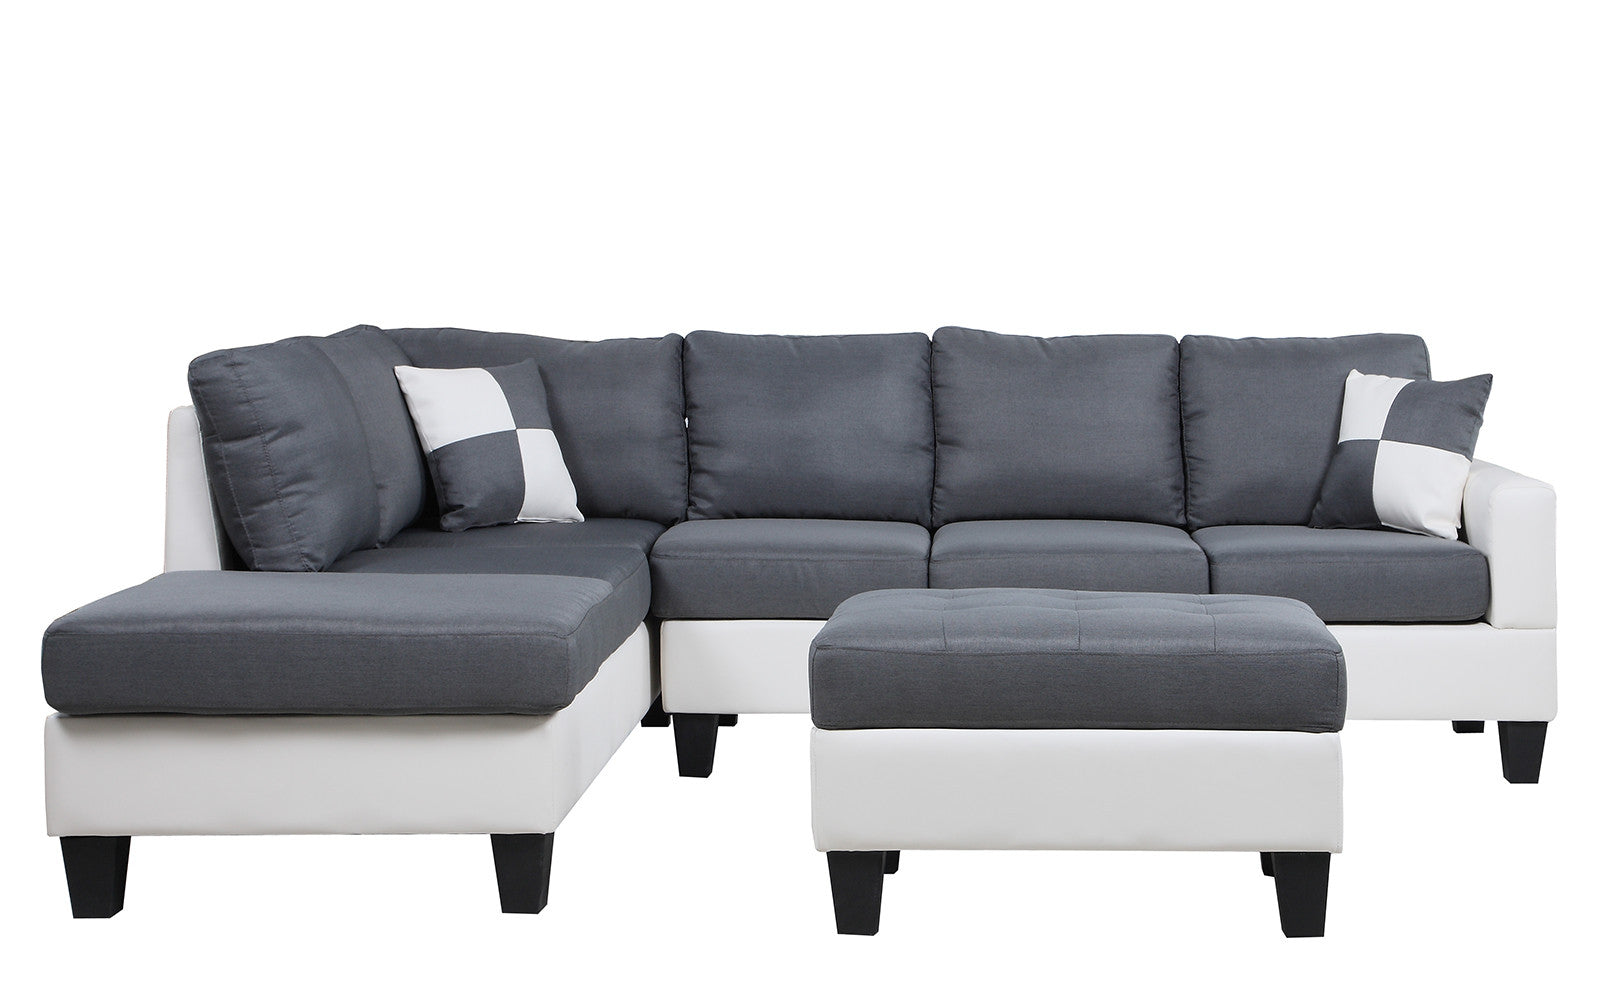 added grey chaise pdp spaces successfully to wlaf fabric piece lucy qty laf living w sectional been your cart has gray